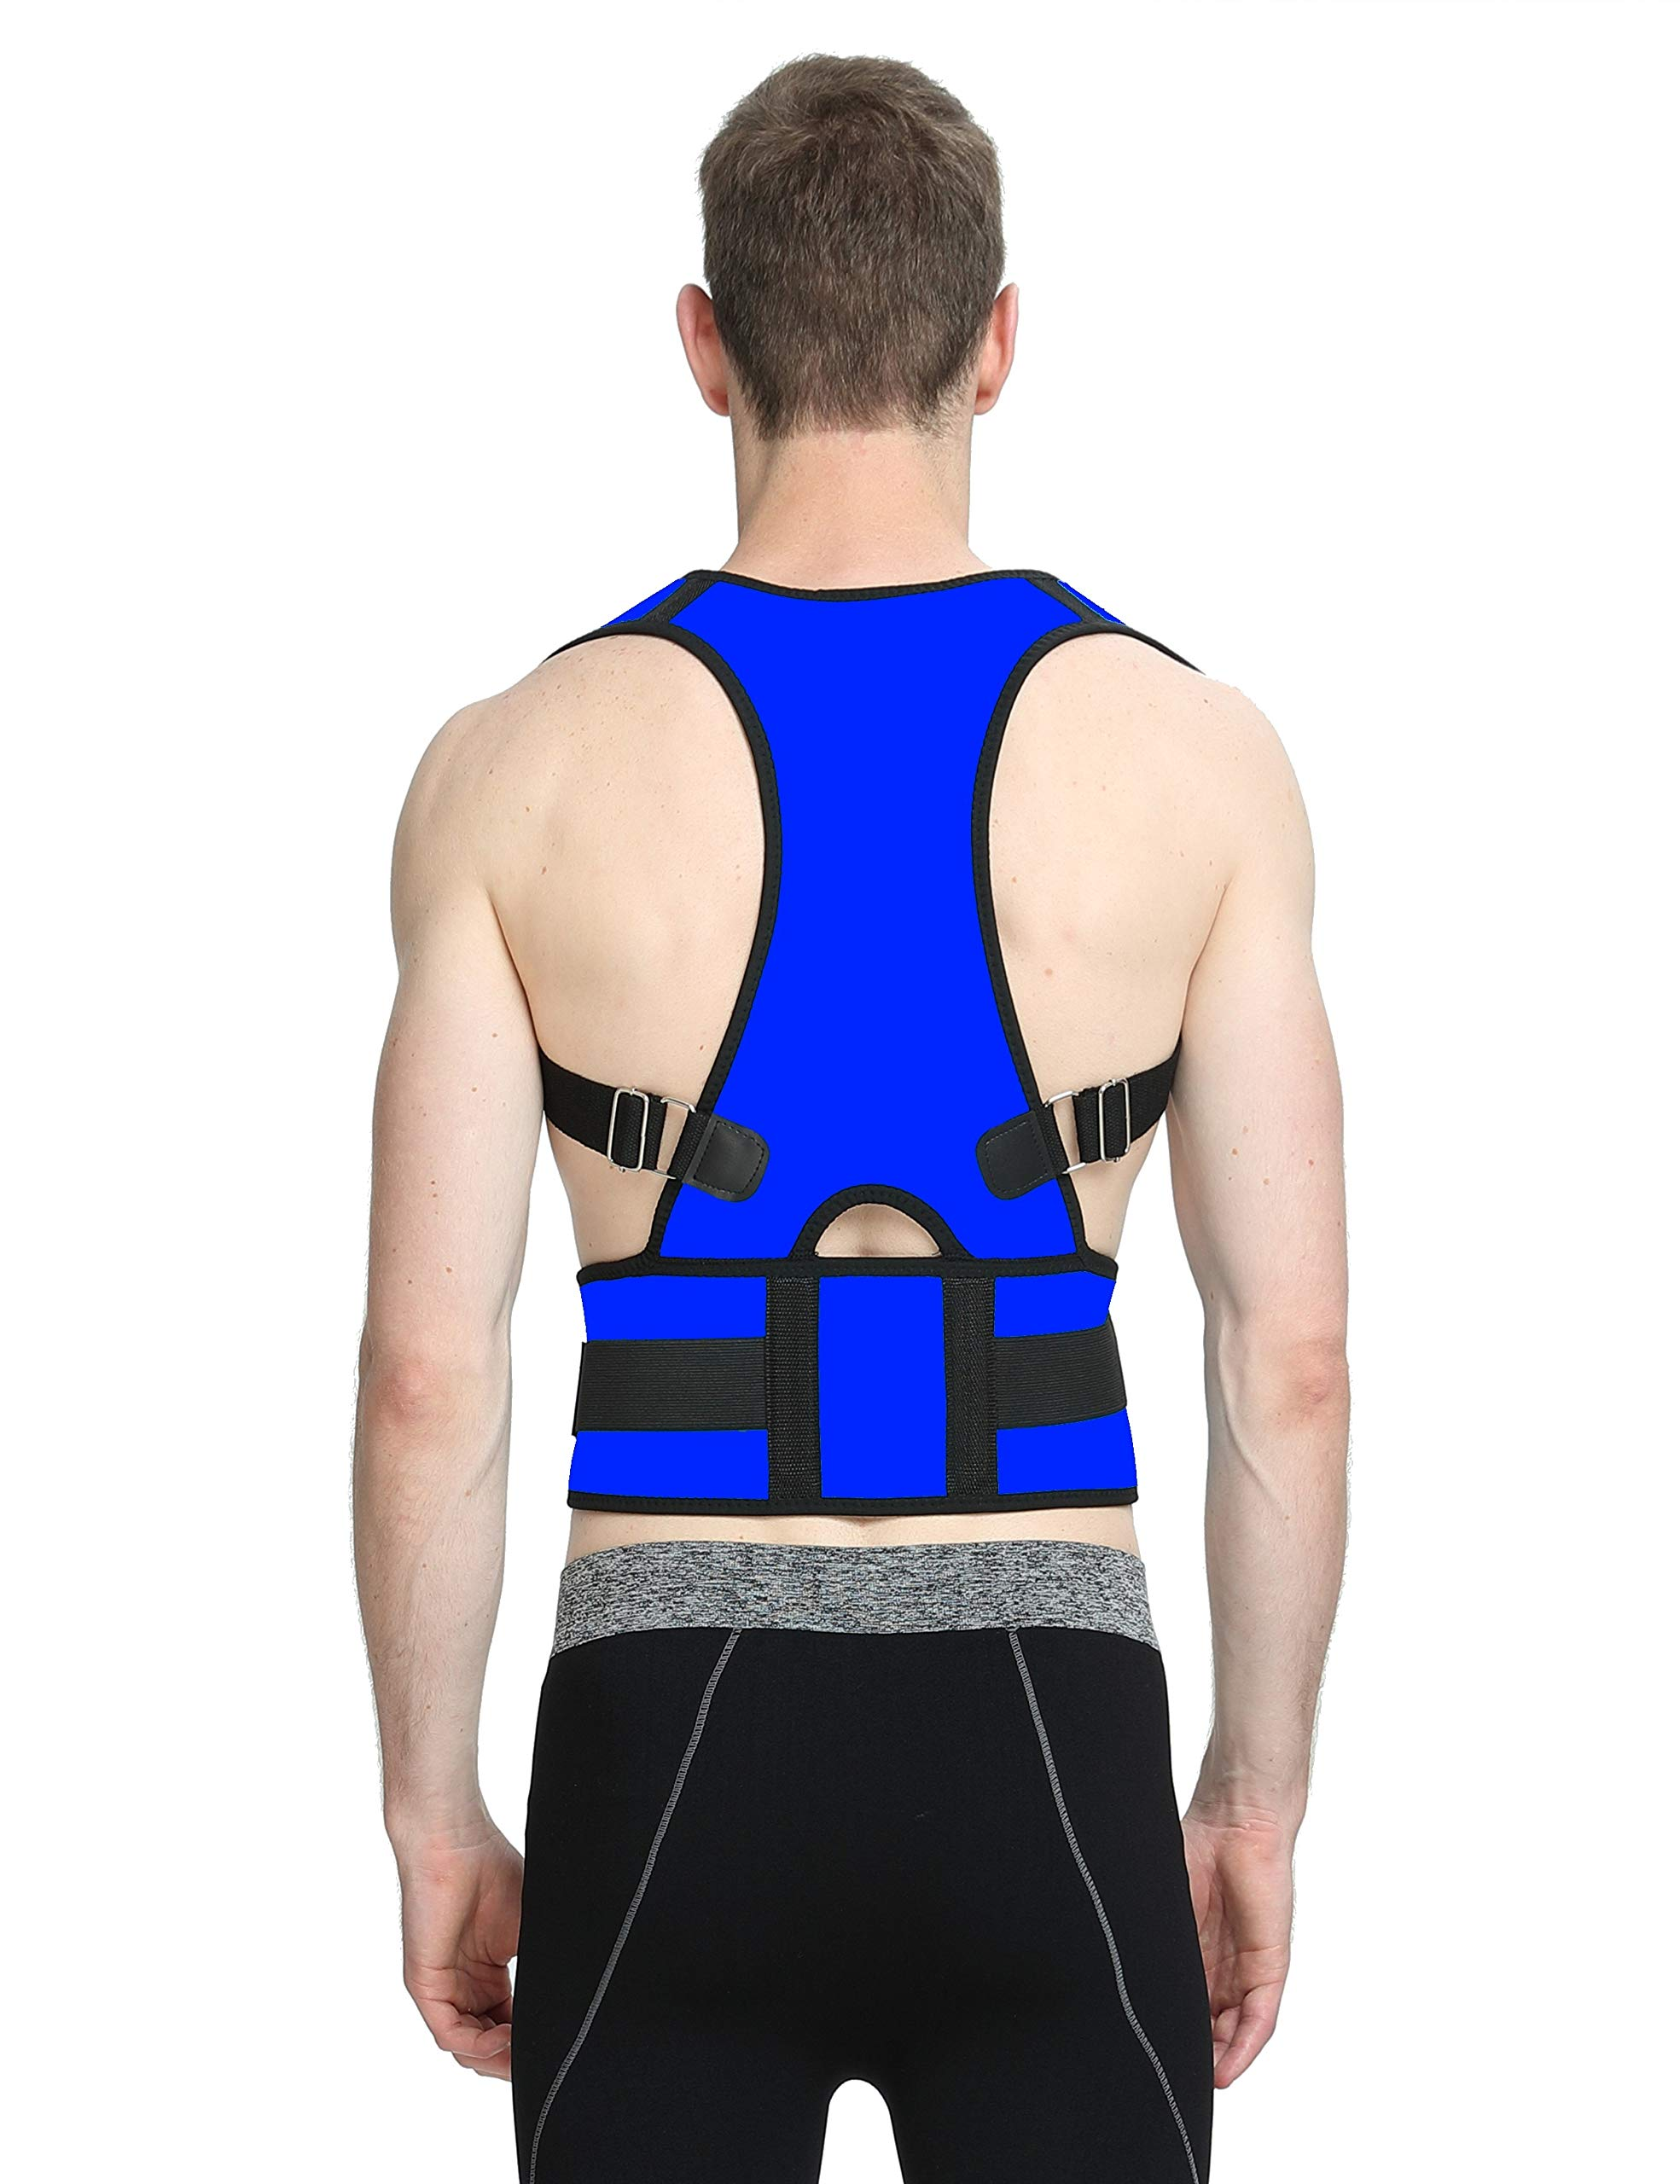 PosturePerfect - Posture Support Brace – Comfortably Prevent Slouching & Reduce Back Pain – Fully Adjustable Lumbar Back and Shoulder Support – for Men and Women - Neoprene (Blue, XL)